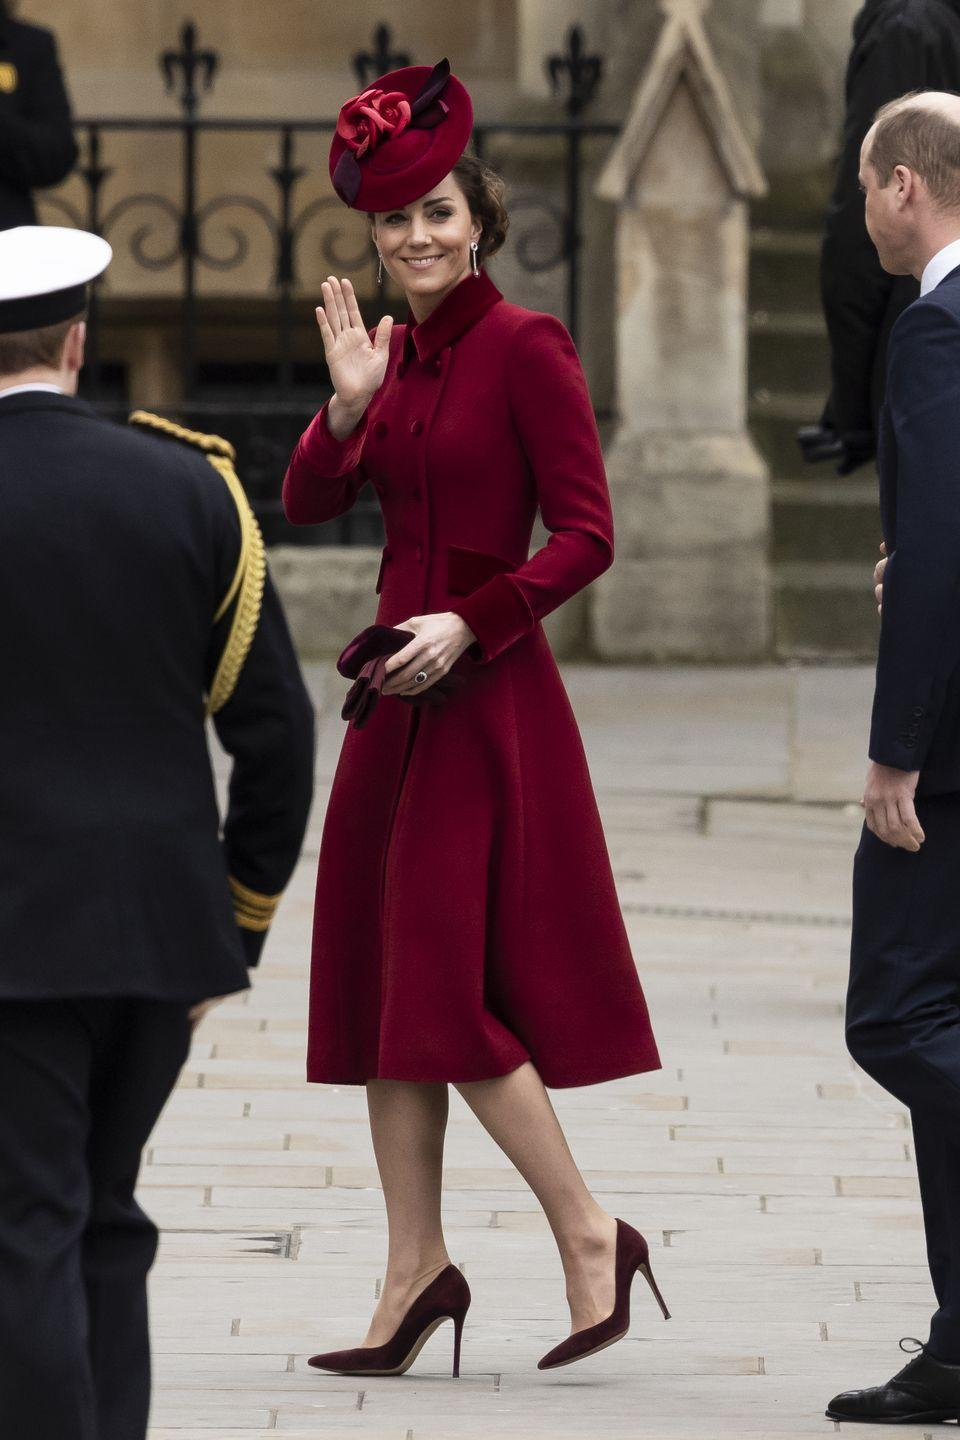 """<p>Kate chose a burgundy Catherine Walker <a href=""""https://www.townandcountrymag.com/society/tradition/a31139621/kate-middleton-red-coat-dress-commonwealth-service-photos/"""" rel=""""nofollow noopener"""" target=""""_blank"""" data-ylk=""""slk:coat dress"""" class=""""link rapid-noclick-resp"""">coat dress</a> for 2020's Commonwealth Day celebrations. She paired the elegant look (which she <a href=""""https://www.townandcountrymag.com/style/fashion-trends/a25634345/kate-middleton-red-coat-christmas-day-photos/"""" rel=""""nofollow noopener"""" target=""""_blank"""" data-ylk=""""slk:also wore on Christmas in 2018"""" class=""""link rapid-noclick-resp"""">also wore on Christmas in 2018</a>) with matching pumps and a red, floral hat. </p>"""